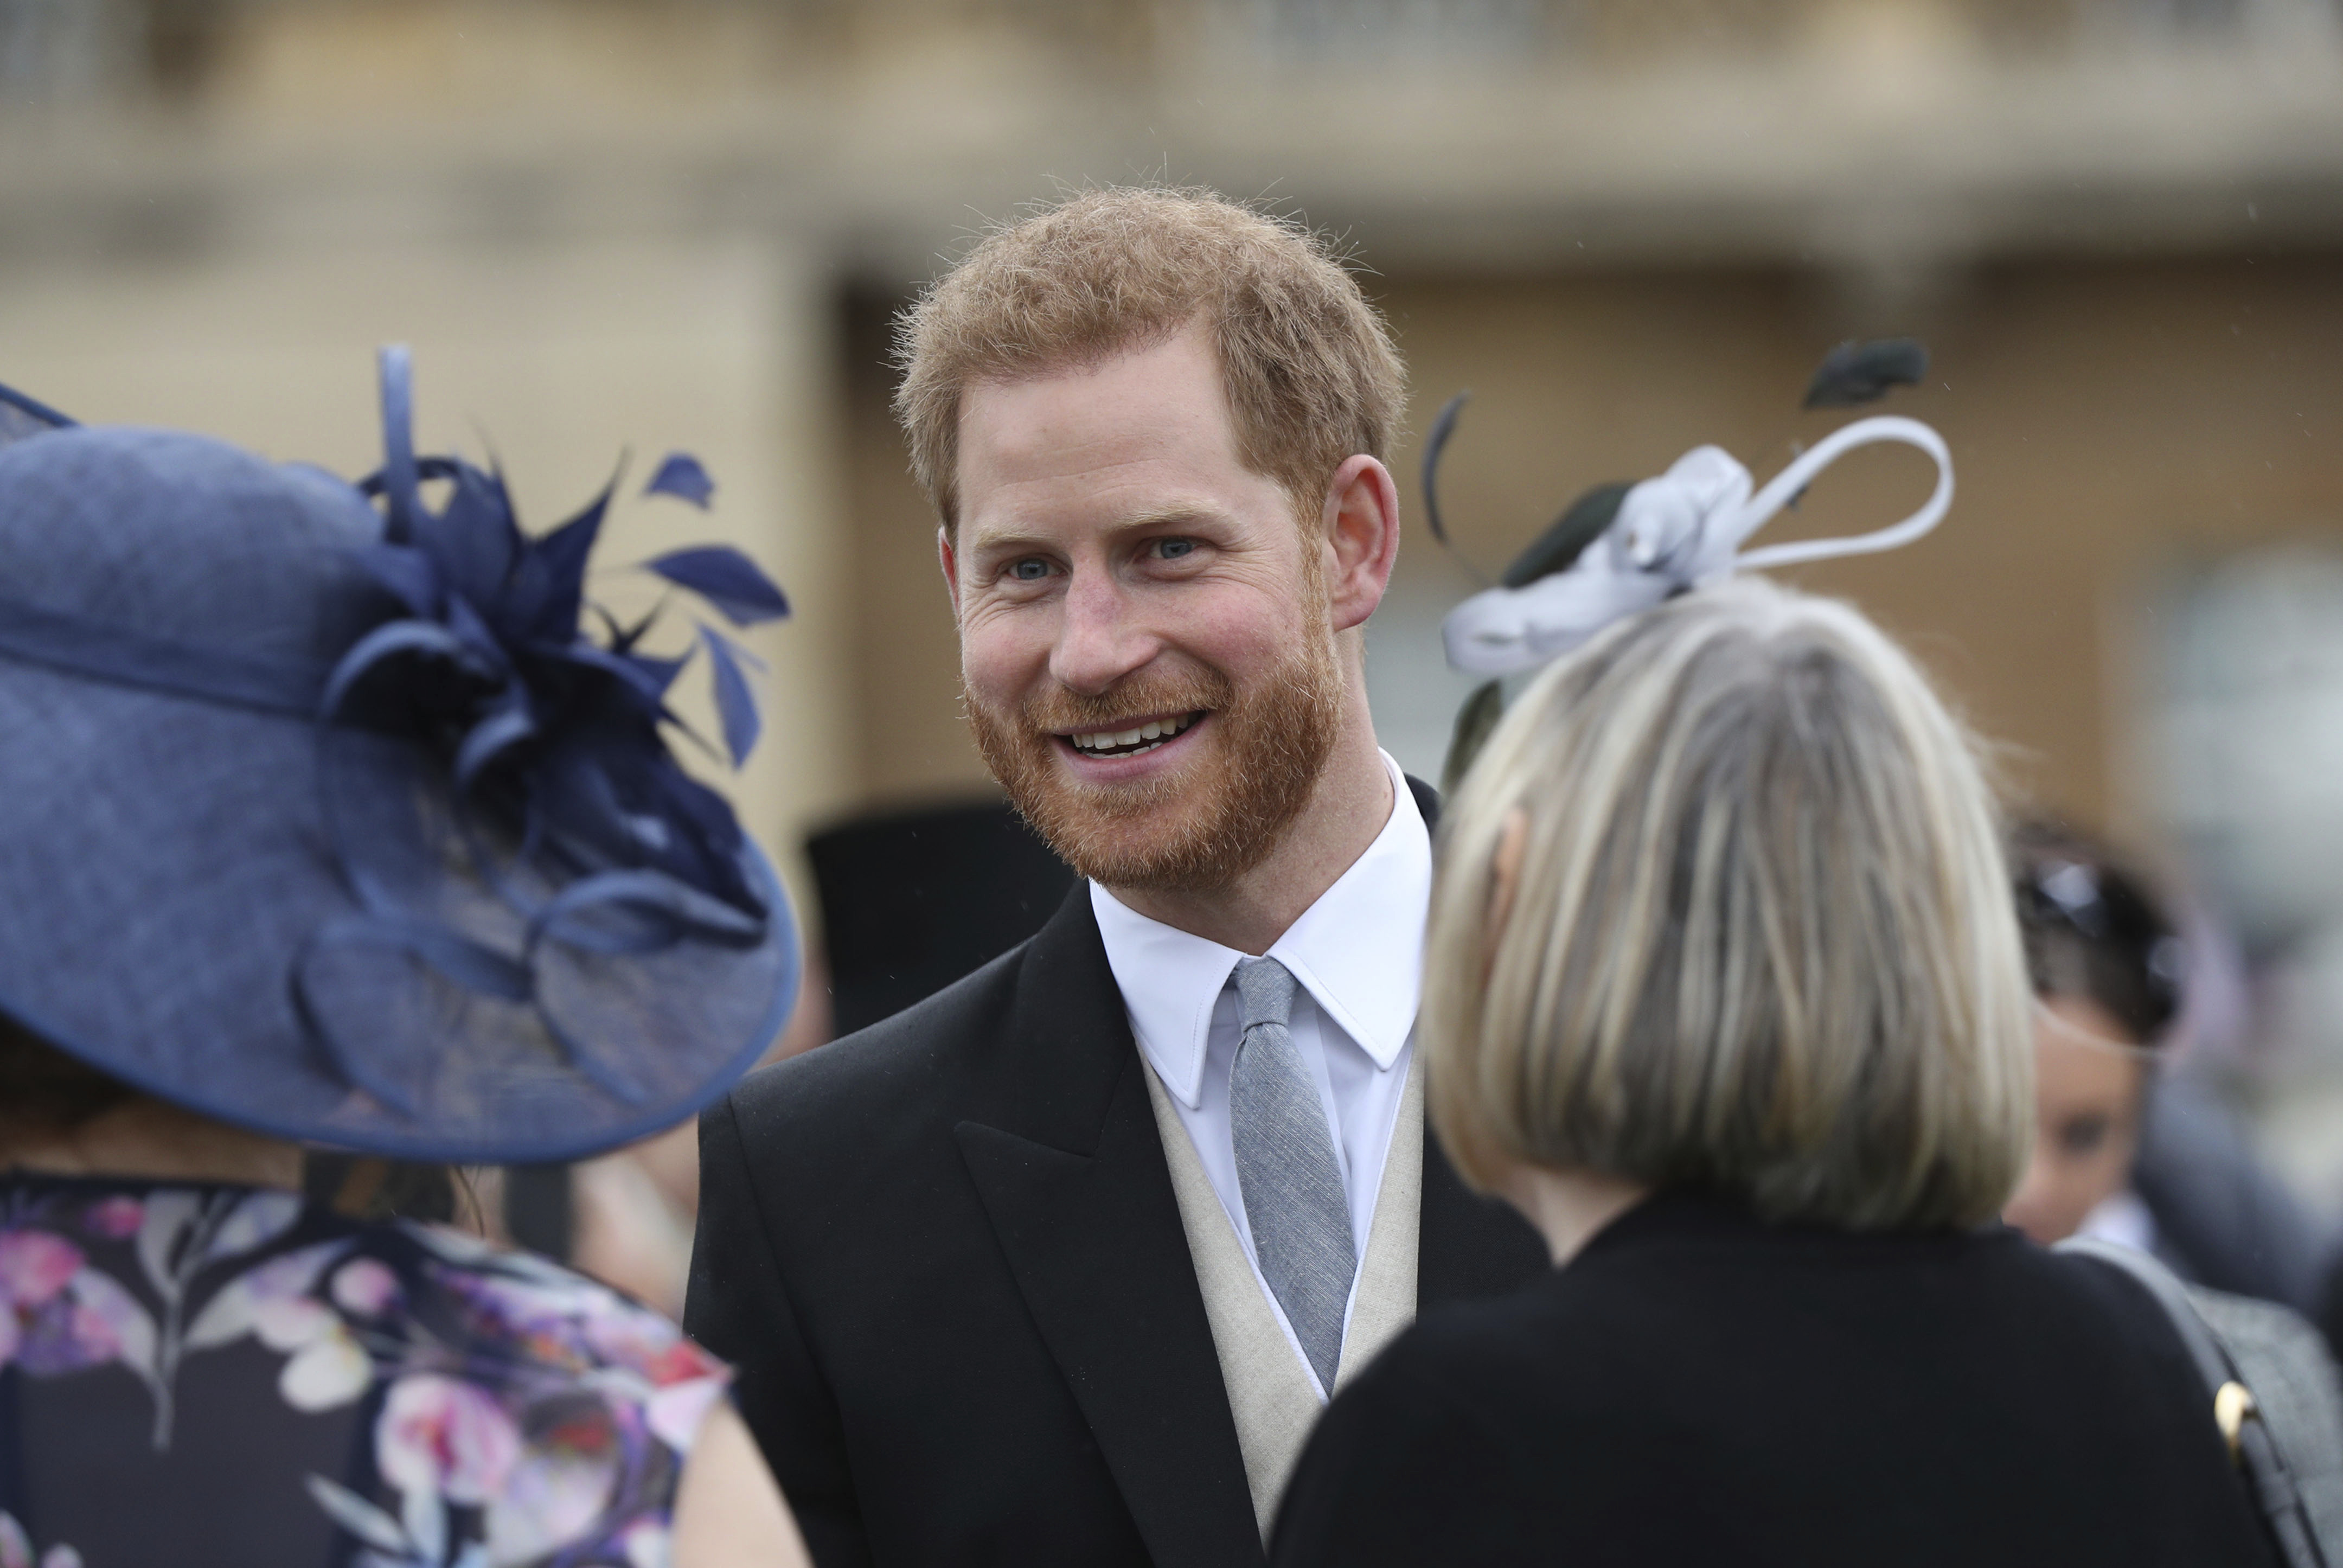 September 15th 2020 - Prince Harry The Duke of Sussex celebrates his 36th birthday. He was born on September 15th 1984 at St. Mary's Hospital in London, England, United Kingdom. - File Photo by: zz/KGC-375/STAR MAX/IPx 2019 5/29/19 Prince Harry The Duke of Sussex during a garden party at Buckingham Palace in London, England, UK.